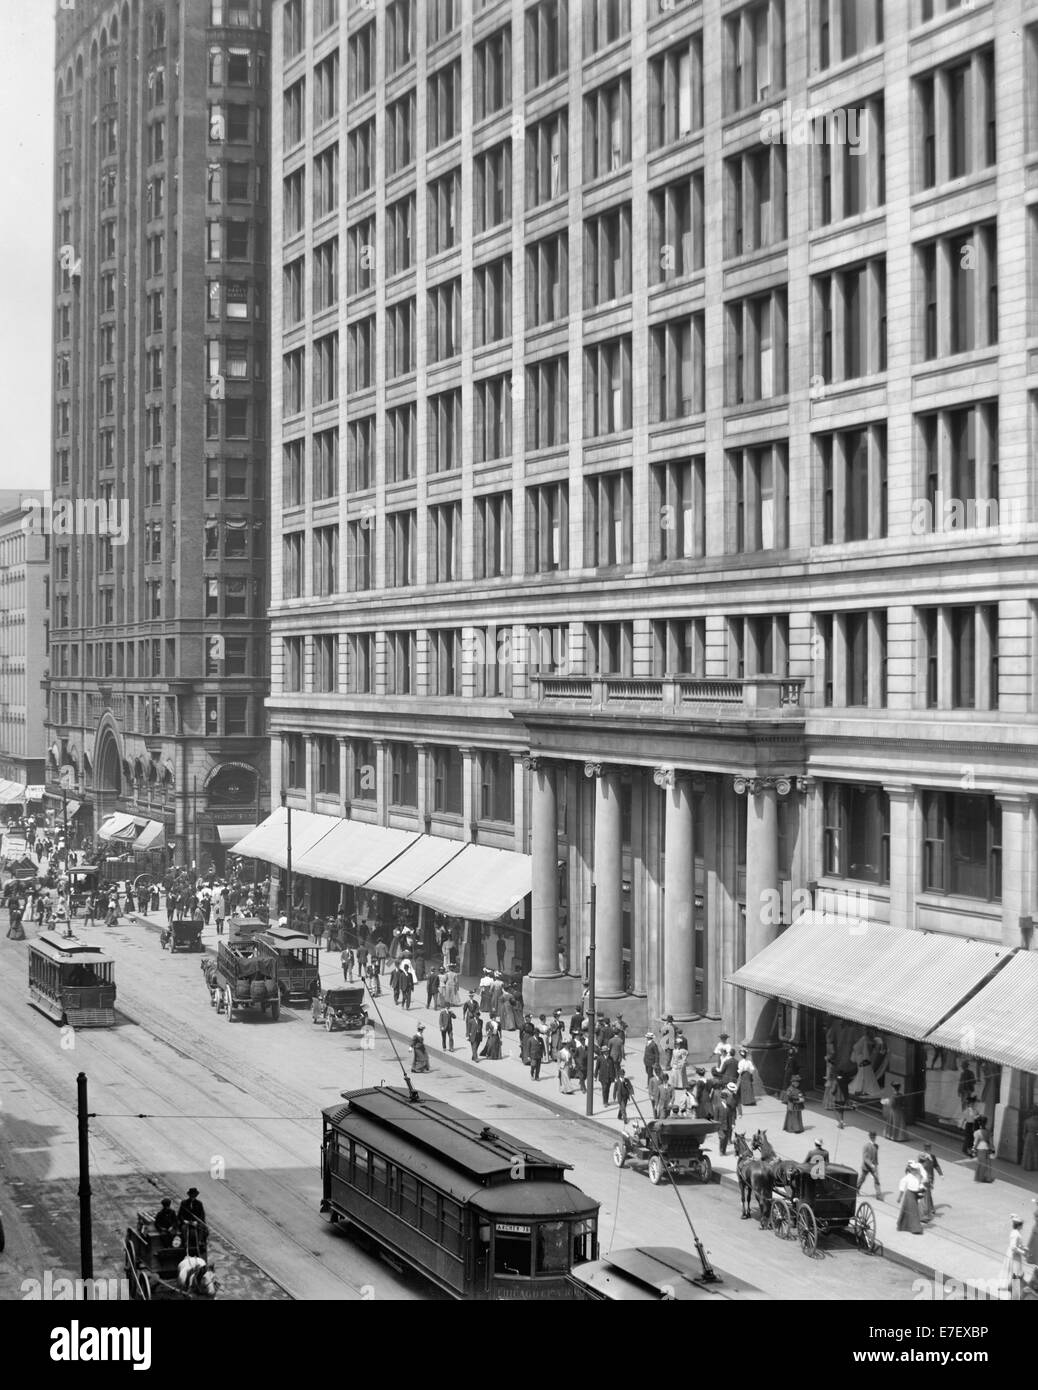 Marshall Field's (Marshall Field & Co.) store, Chicago, Illinois, circa 1910 - Stock Image